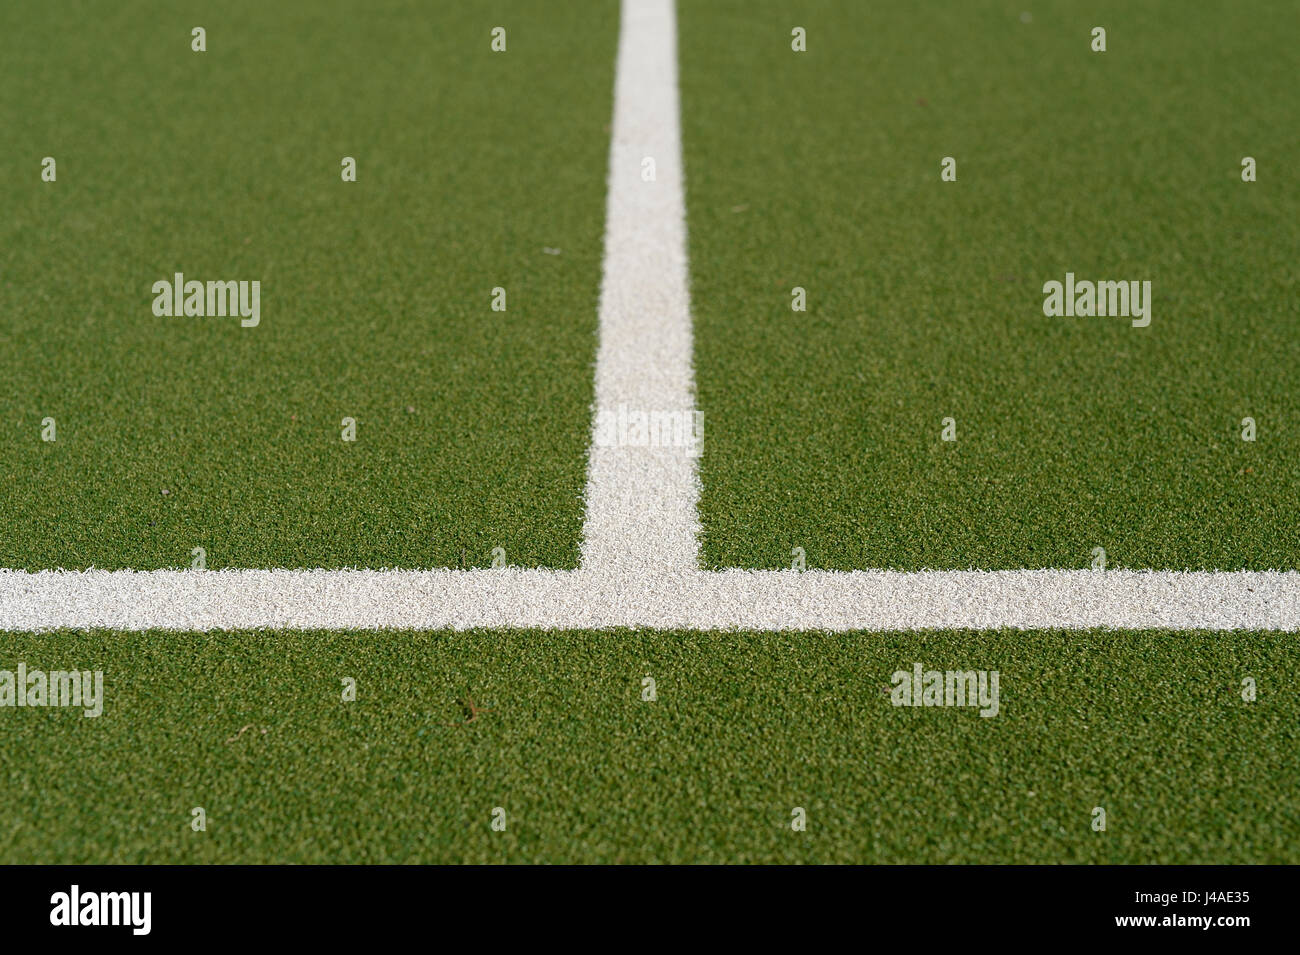 Pitch markings on astro turf hockey pitc. - Stock Image